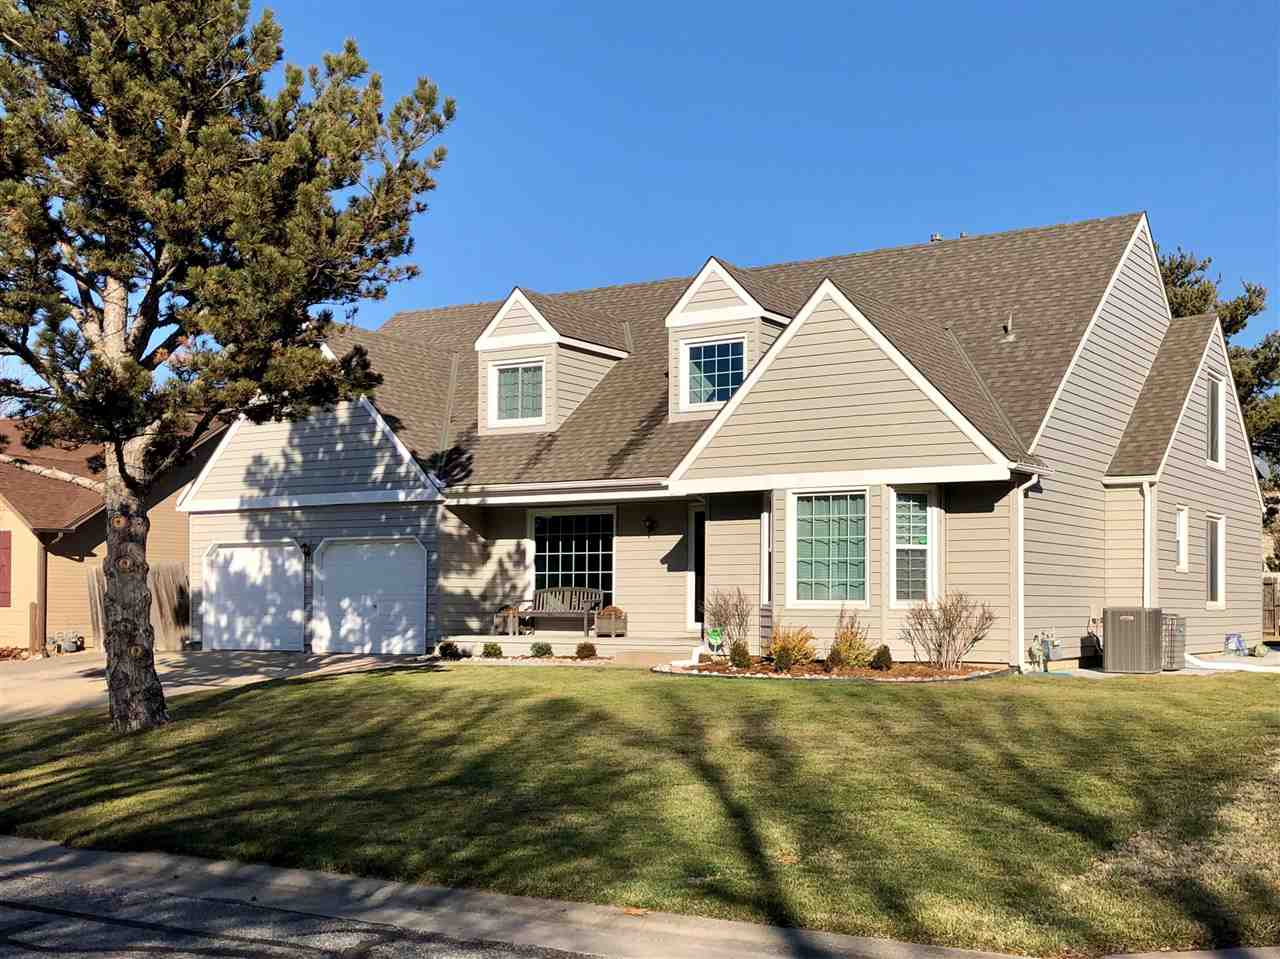 OPEN HOUSE 2/23 2-4 PM.  Beautiful almost 4,000 sqft 5-bed, 4-bath home located on a cul-de-sac stre